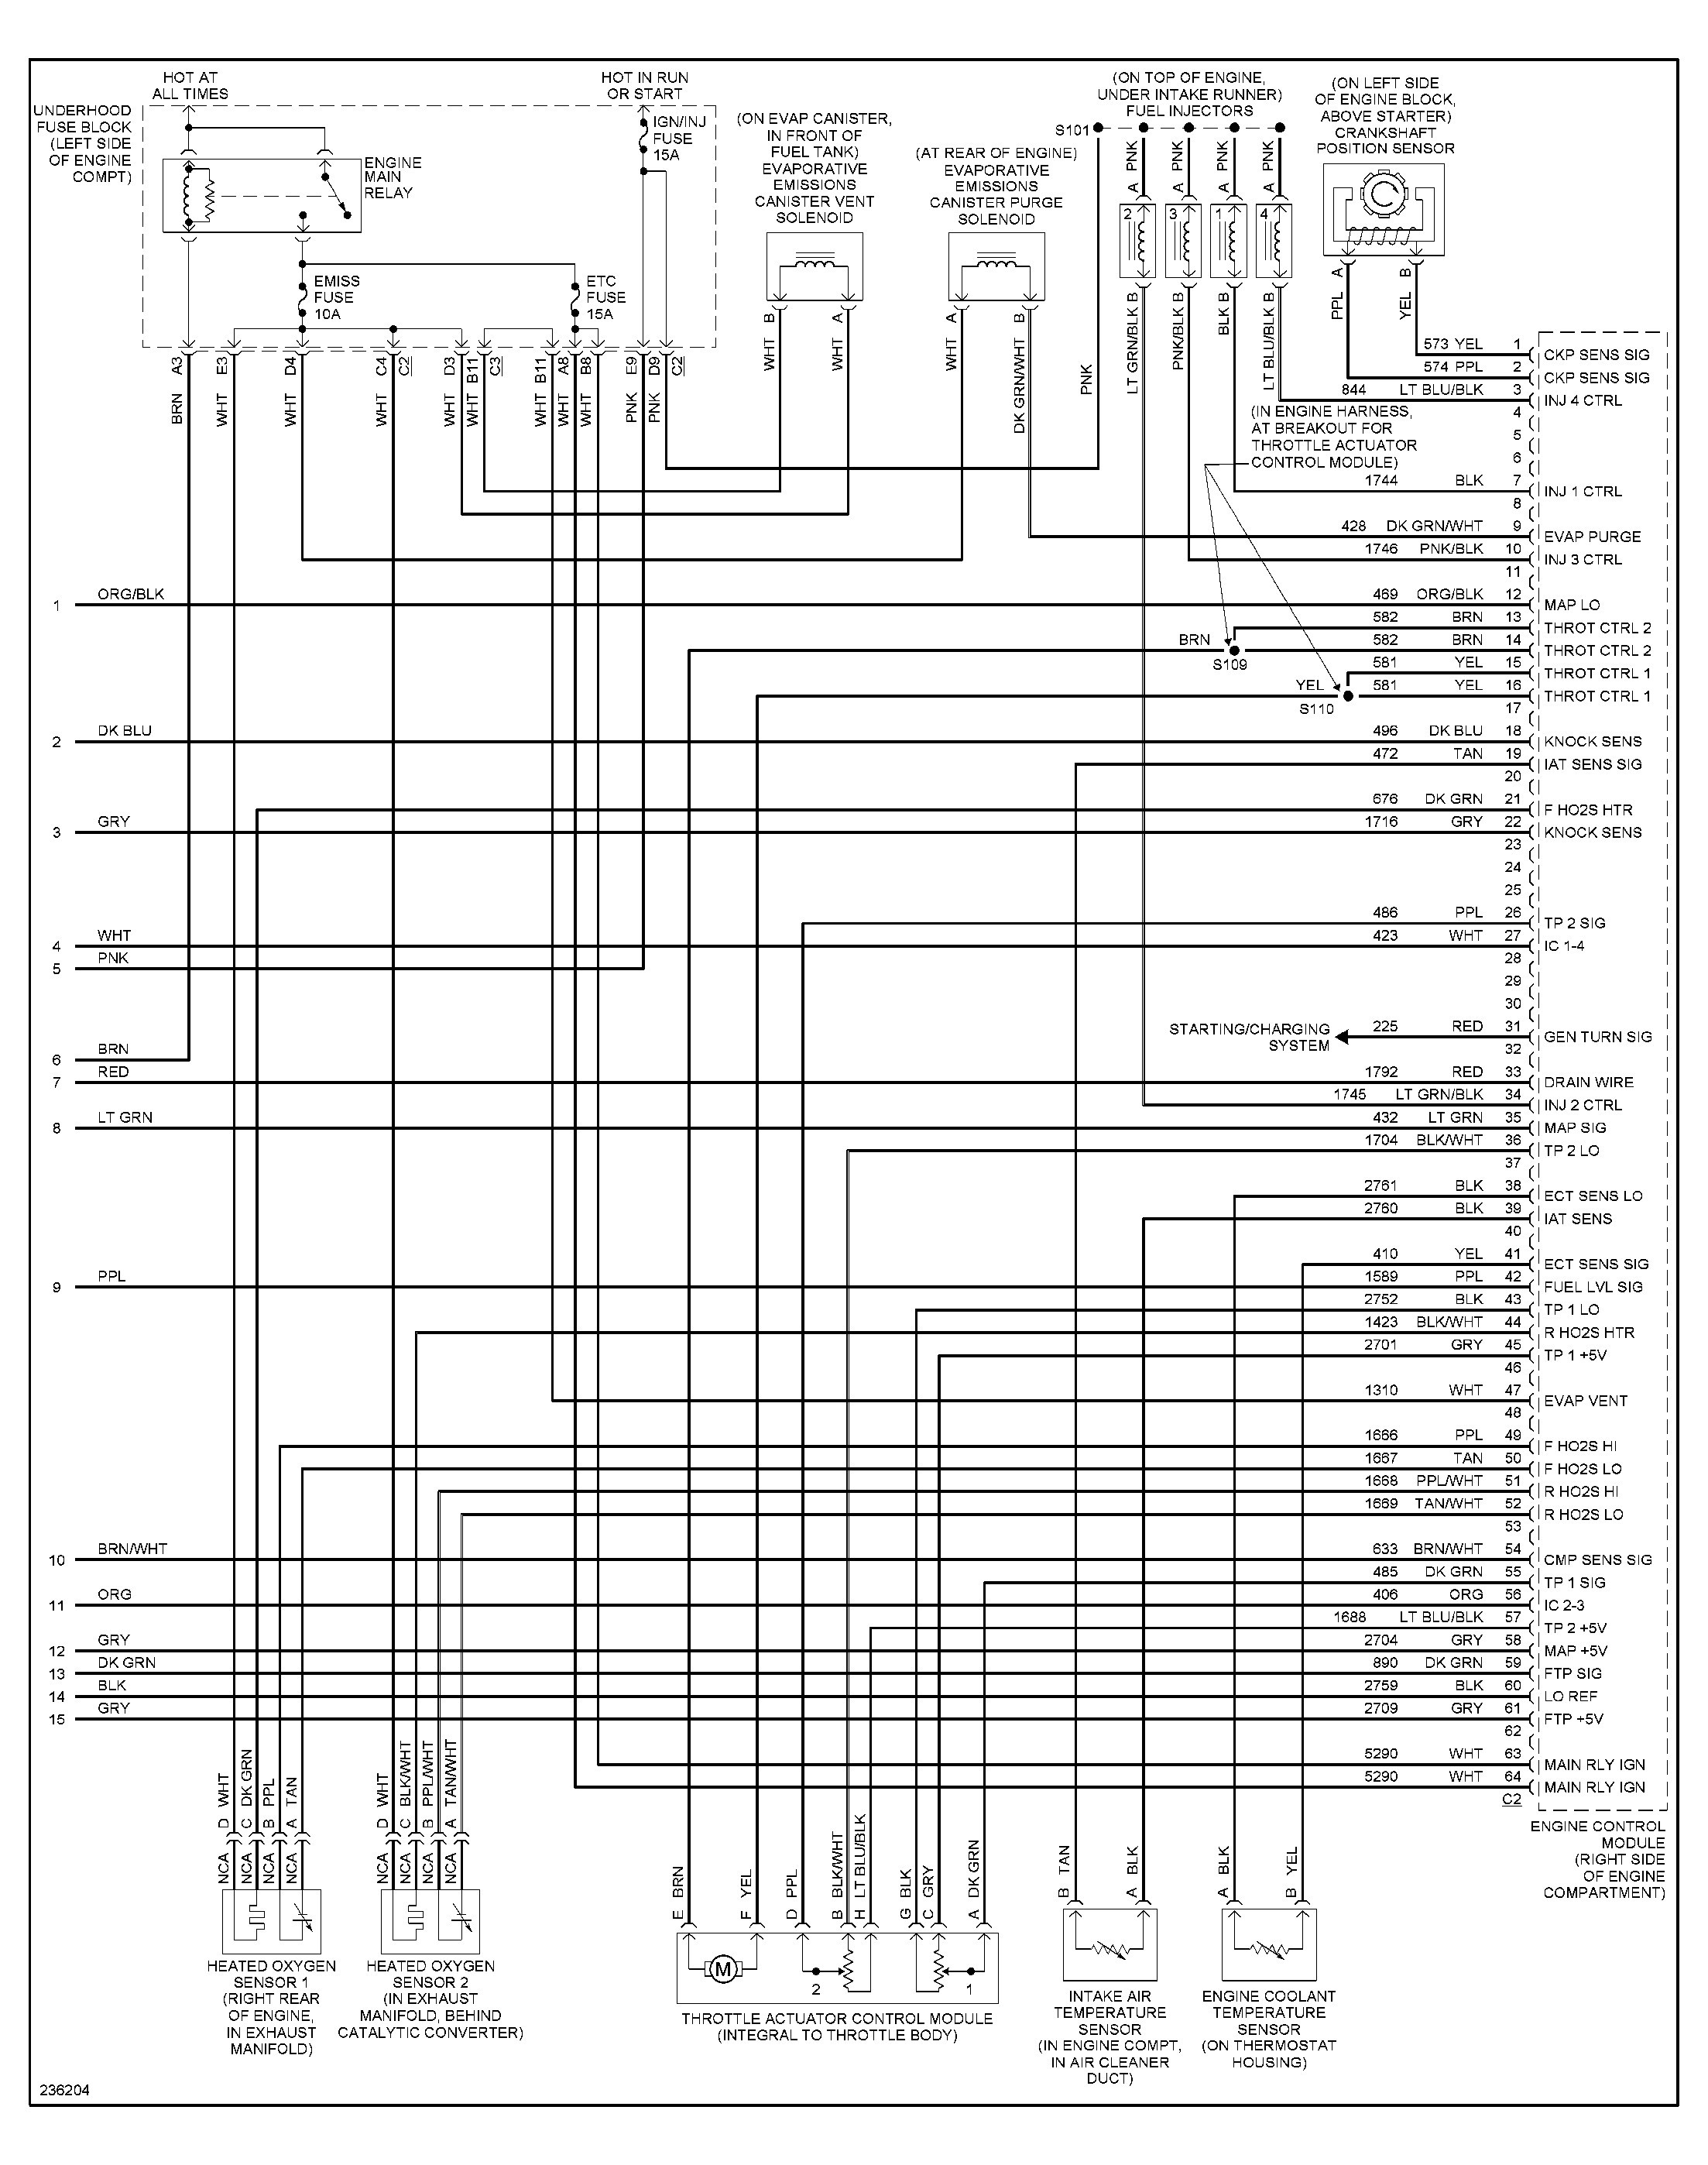 2004 Saturn Ion Level 1 Wiring Diagram Simple Wiring Diagram Options Saturn  Engine Schematic 2004 Saturn Ion Wiring Schematic